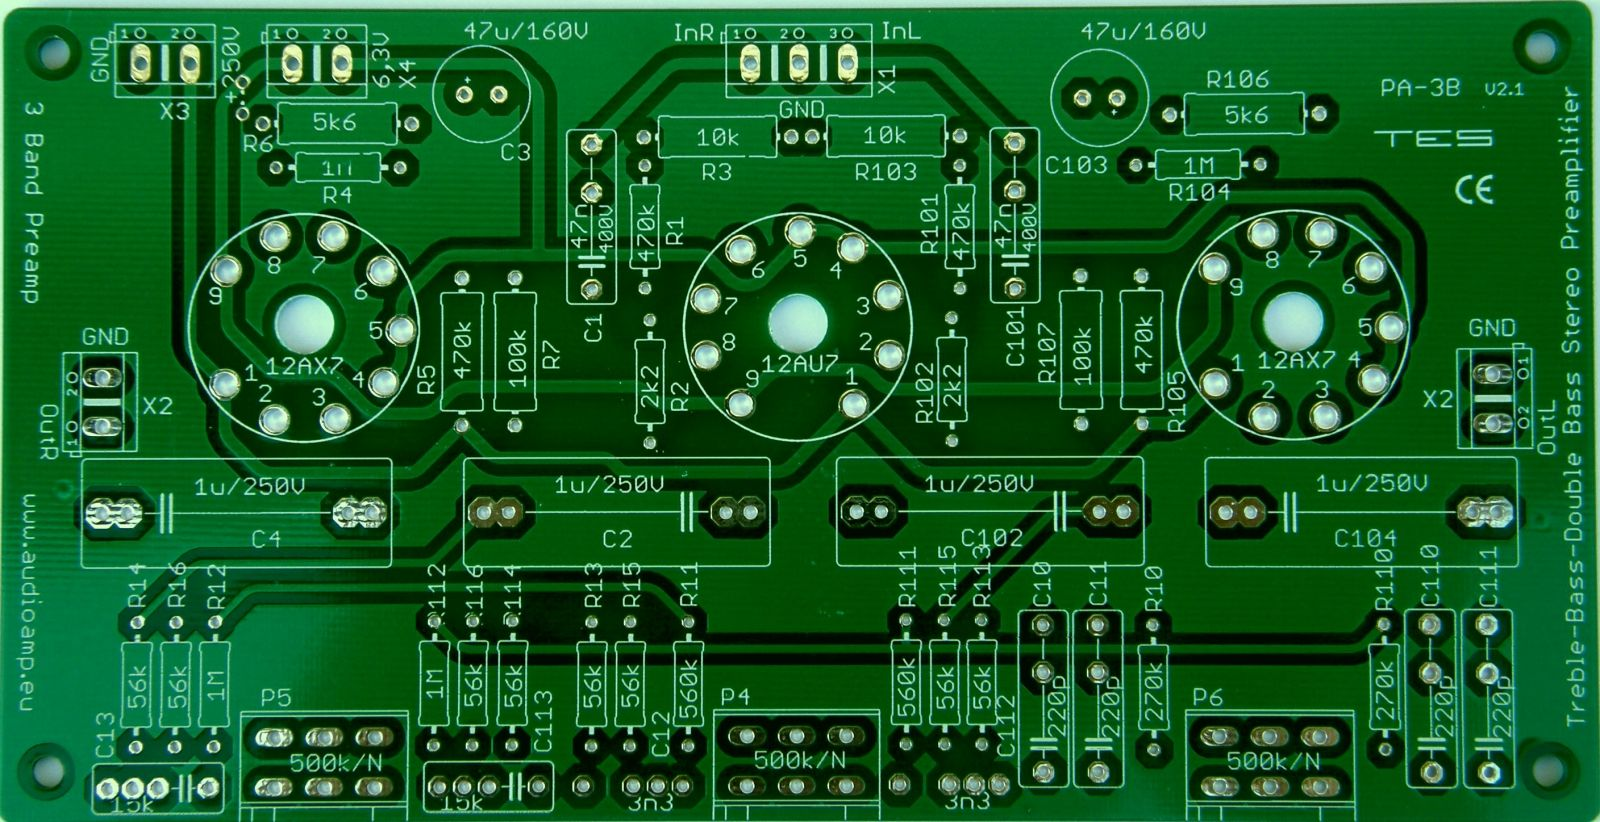 PCB - 3 Band Preamplifier - Double Bass, Bass, Treble, tubes on the parts side TES